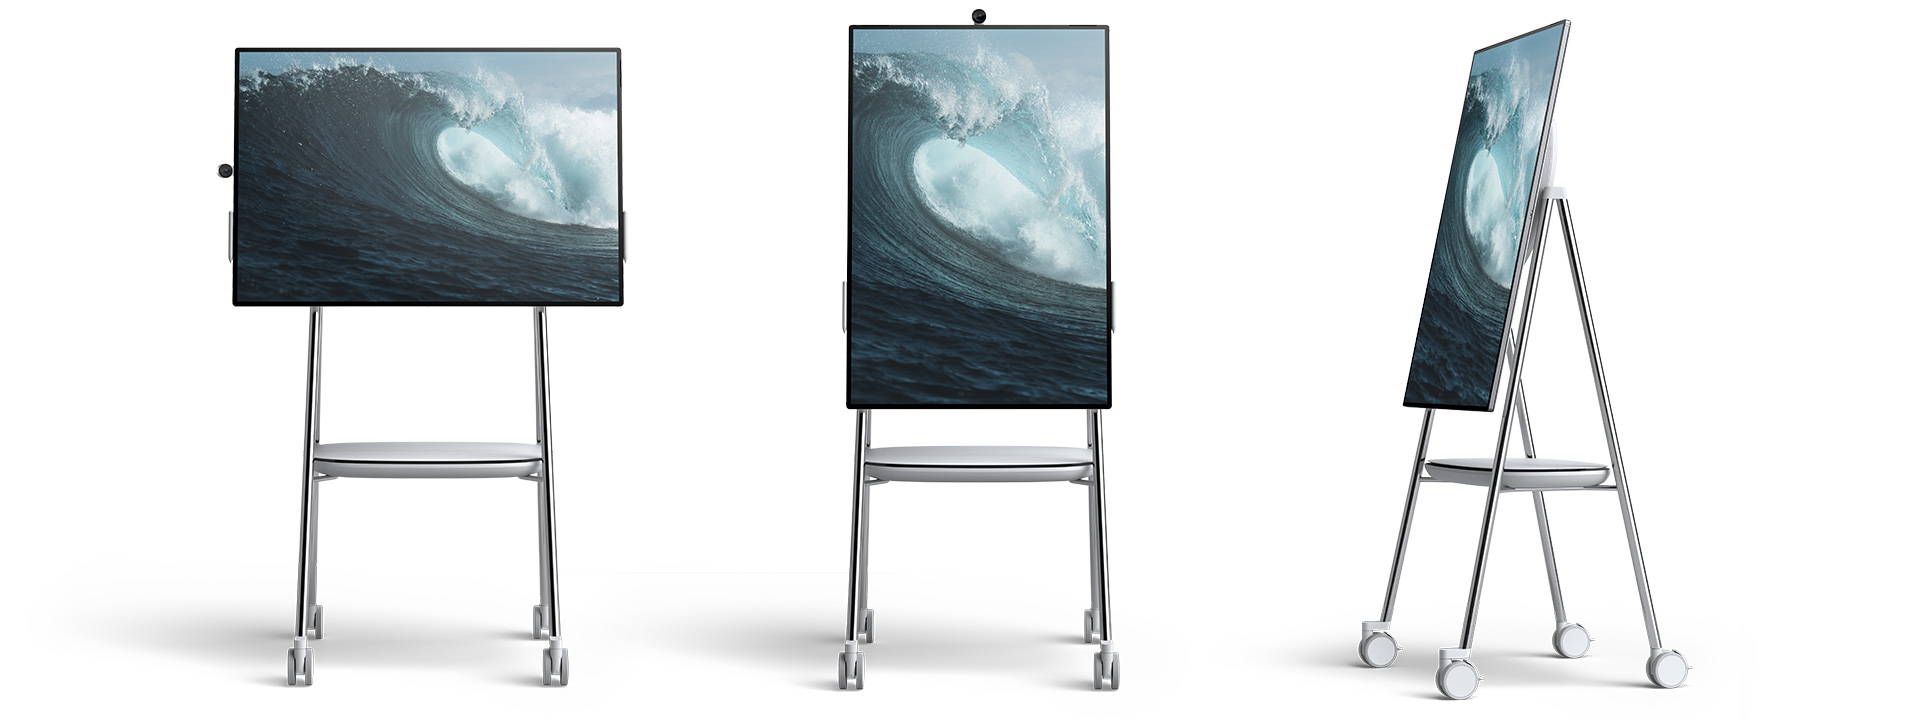 Three Surface Hub 2's are shown on mobile rolling stands designed by Steelcase